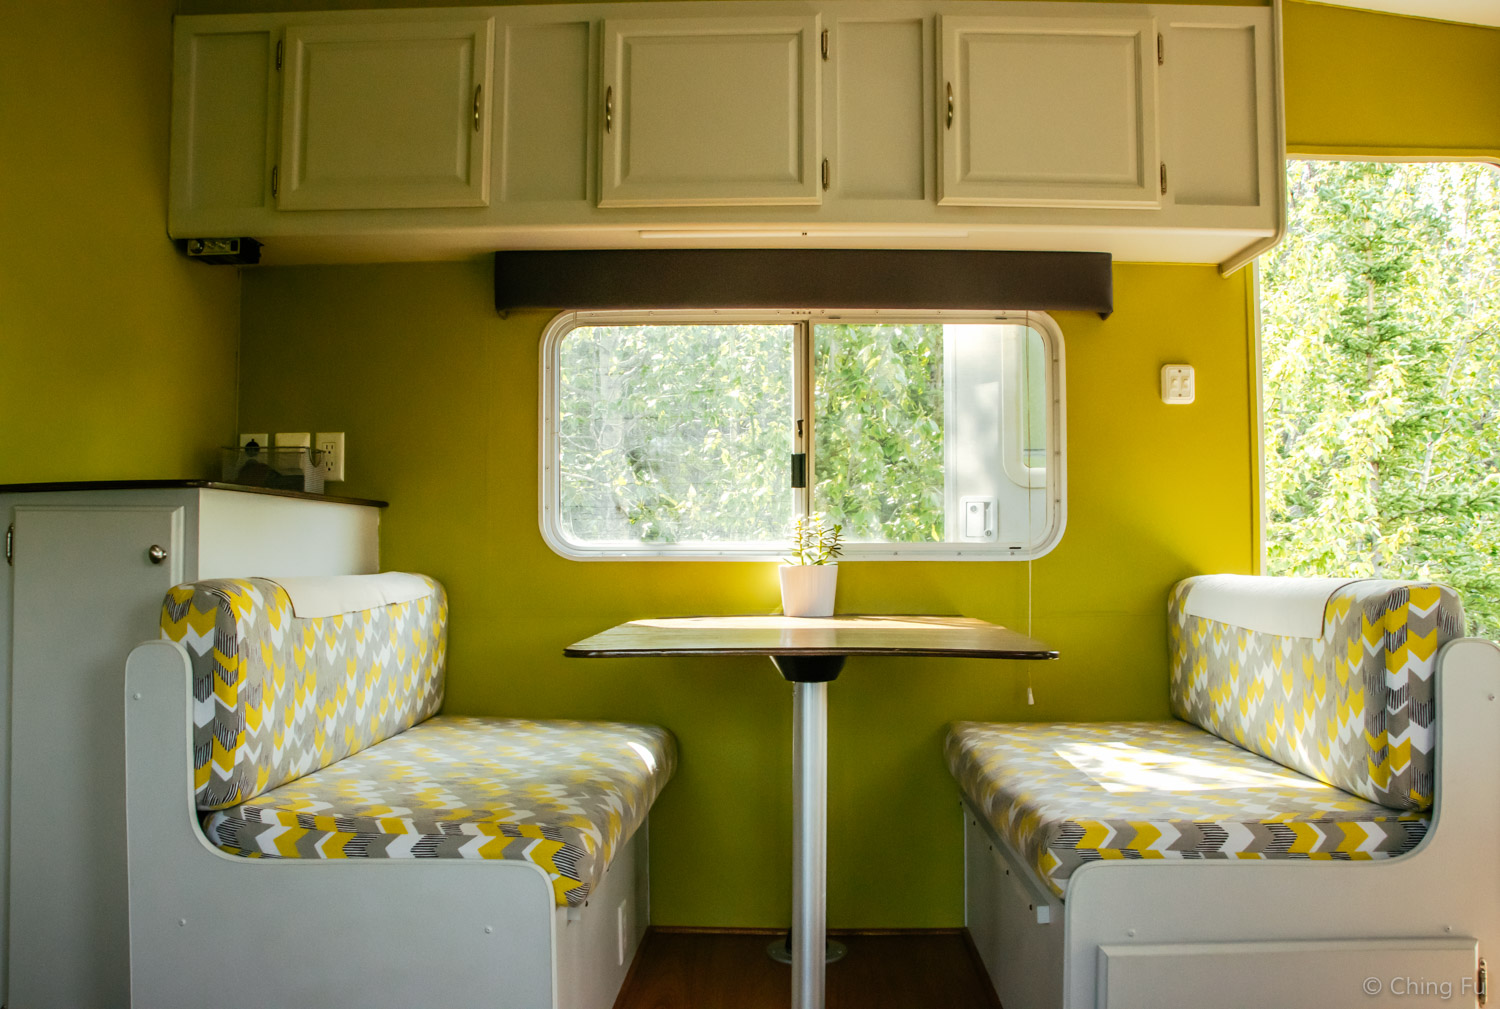 Our dinette.